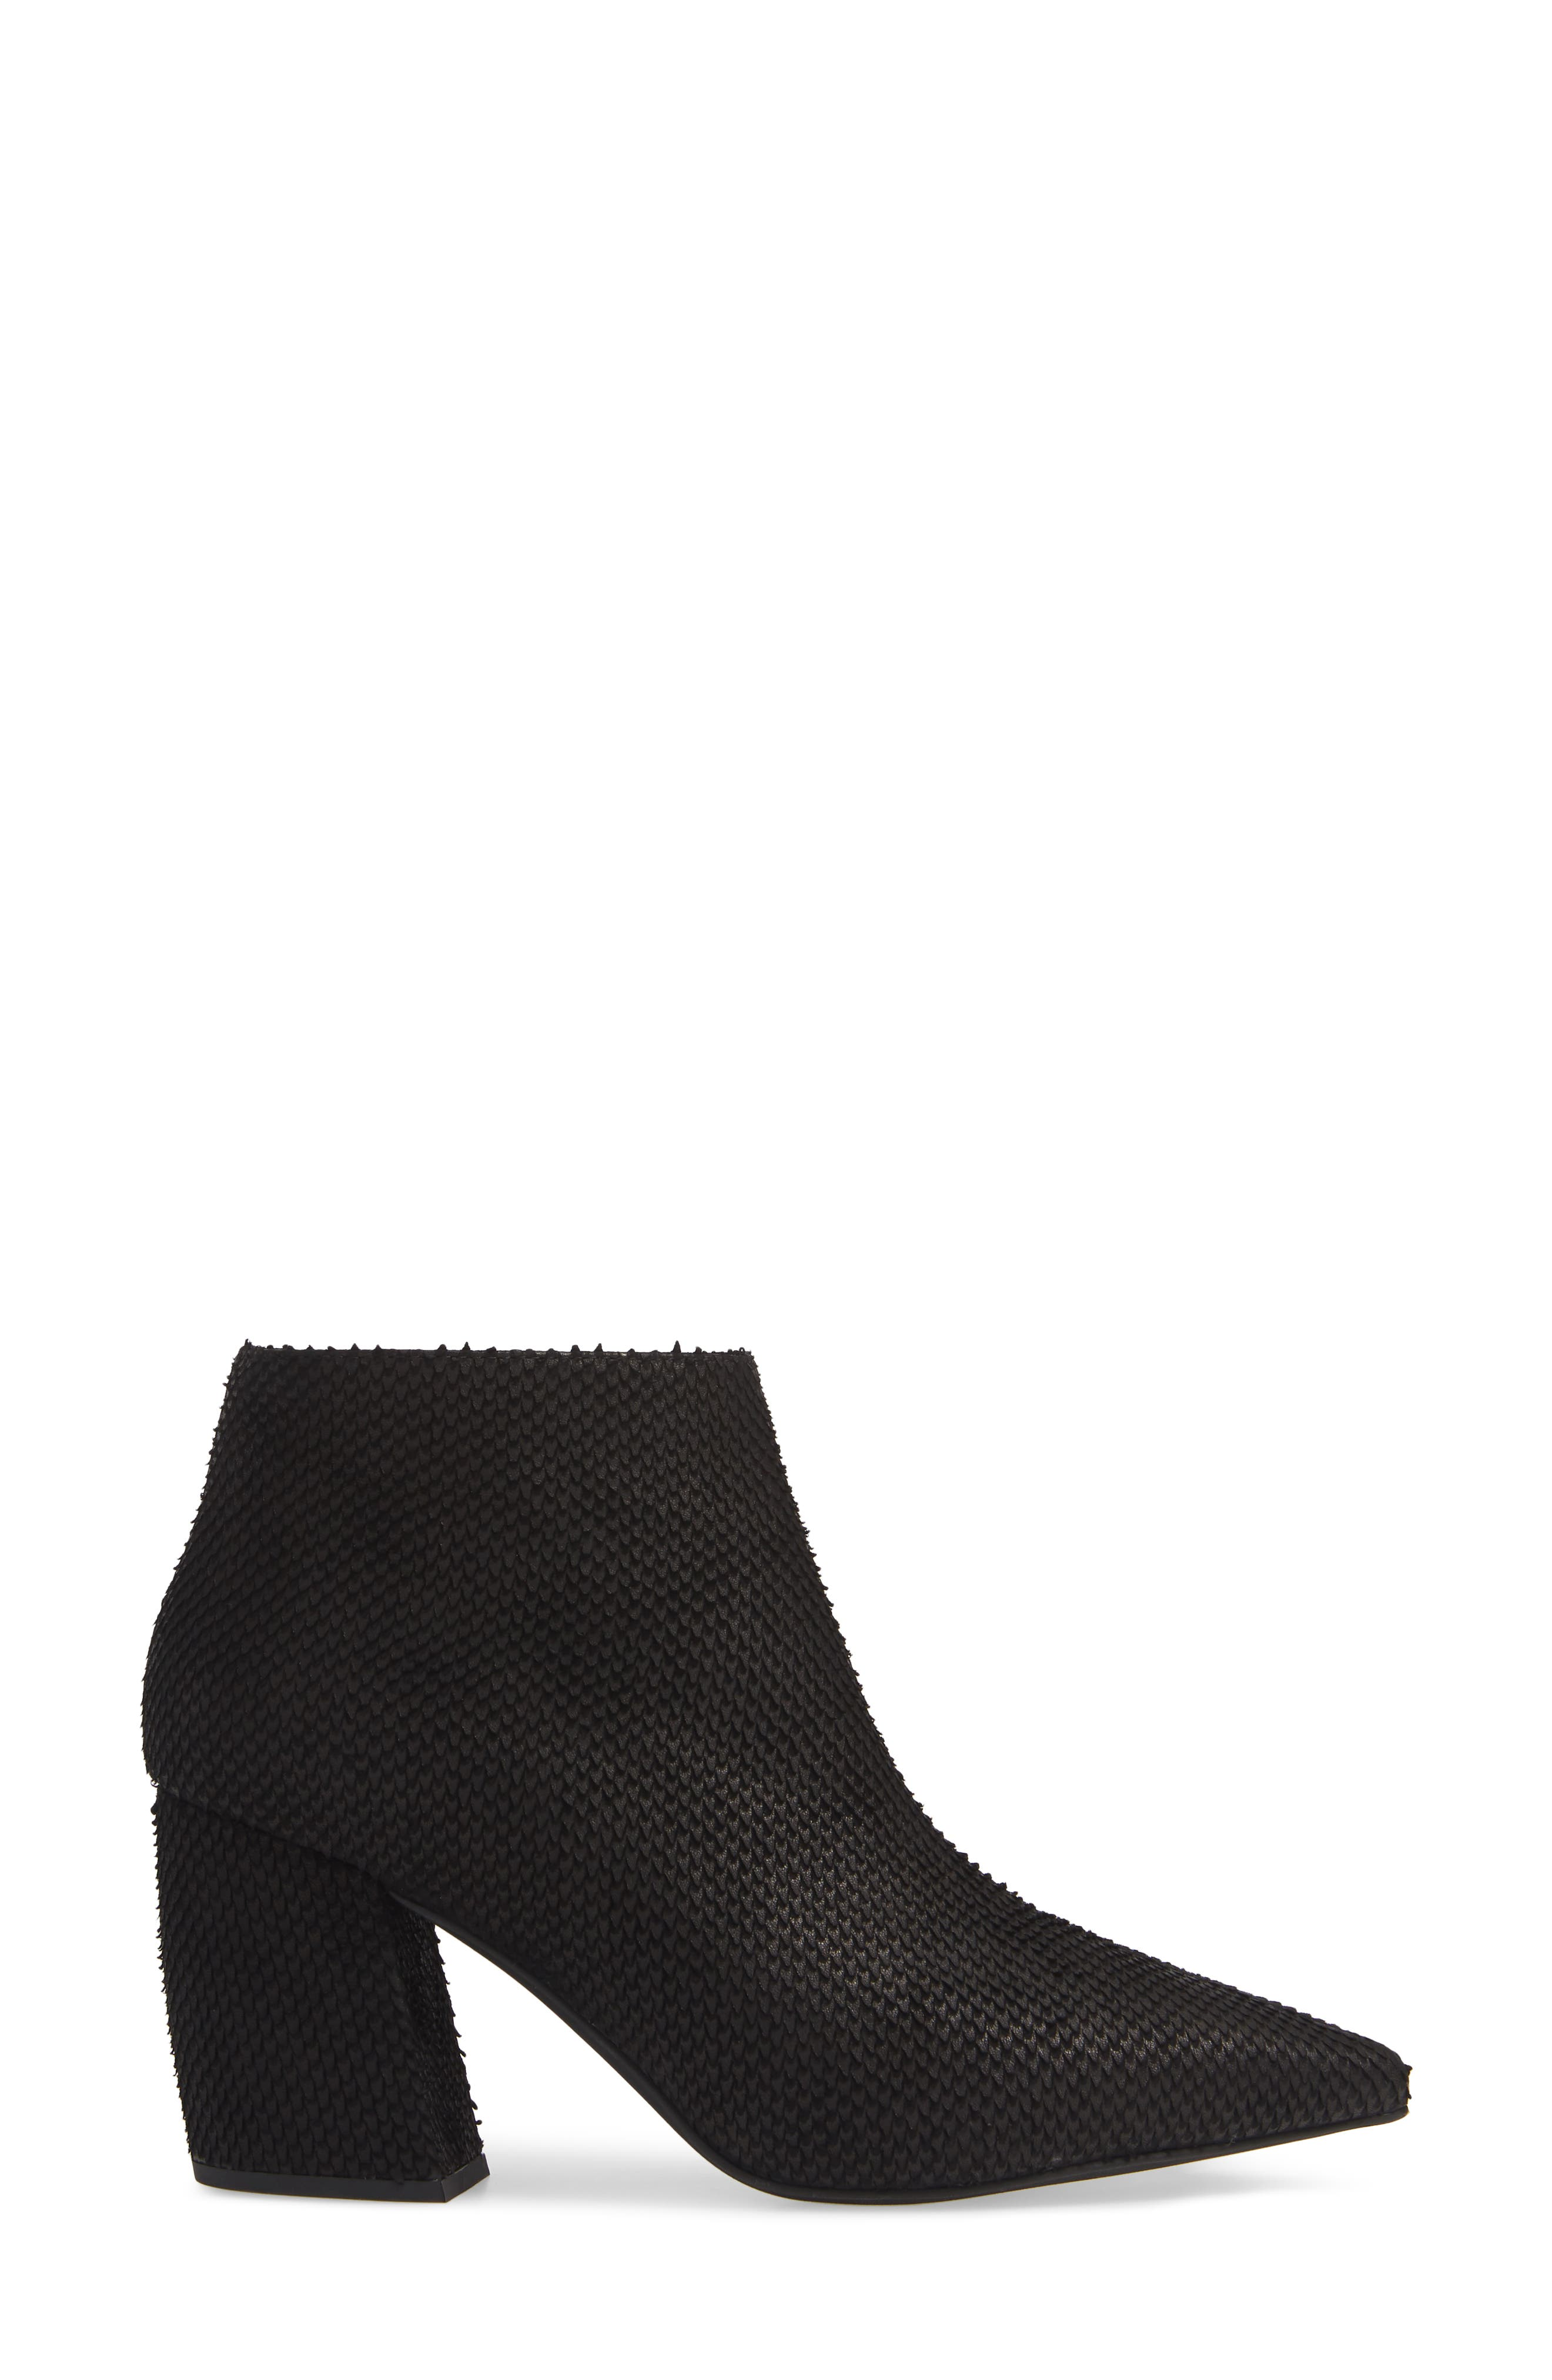 Total Ankle Bootie,                             Alternate thumbnail 3, color,                             BLACK SCALES